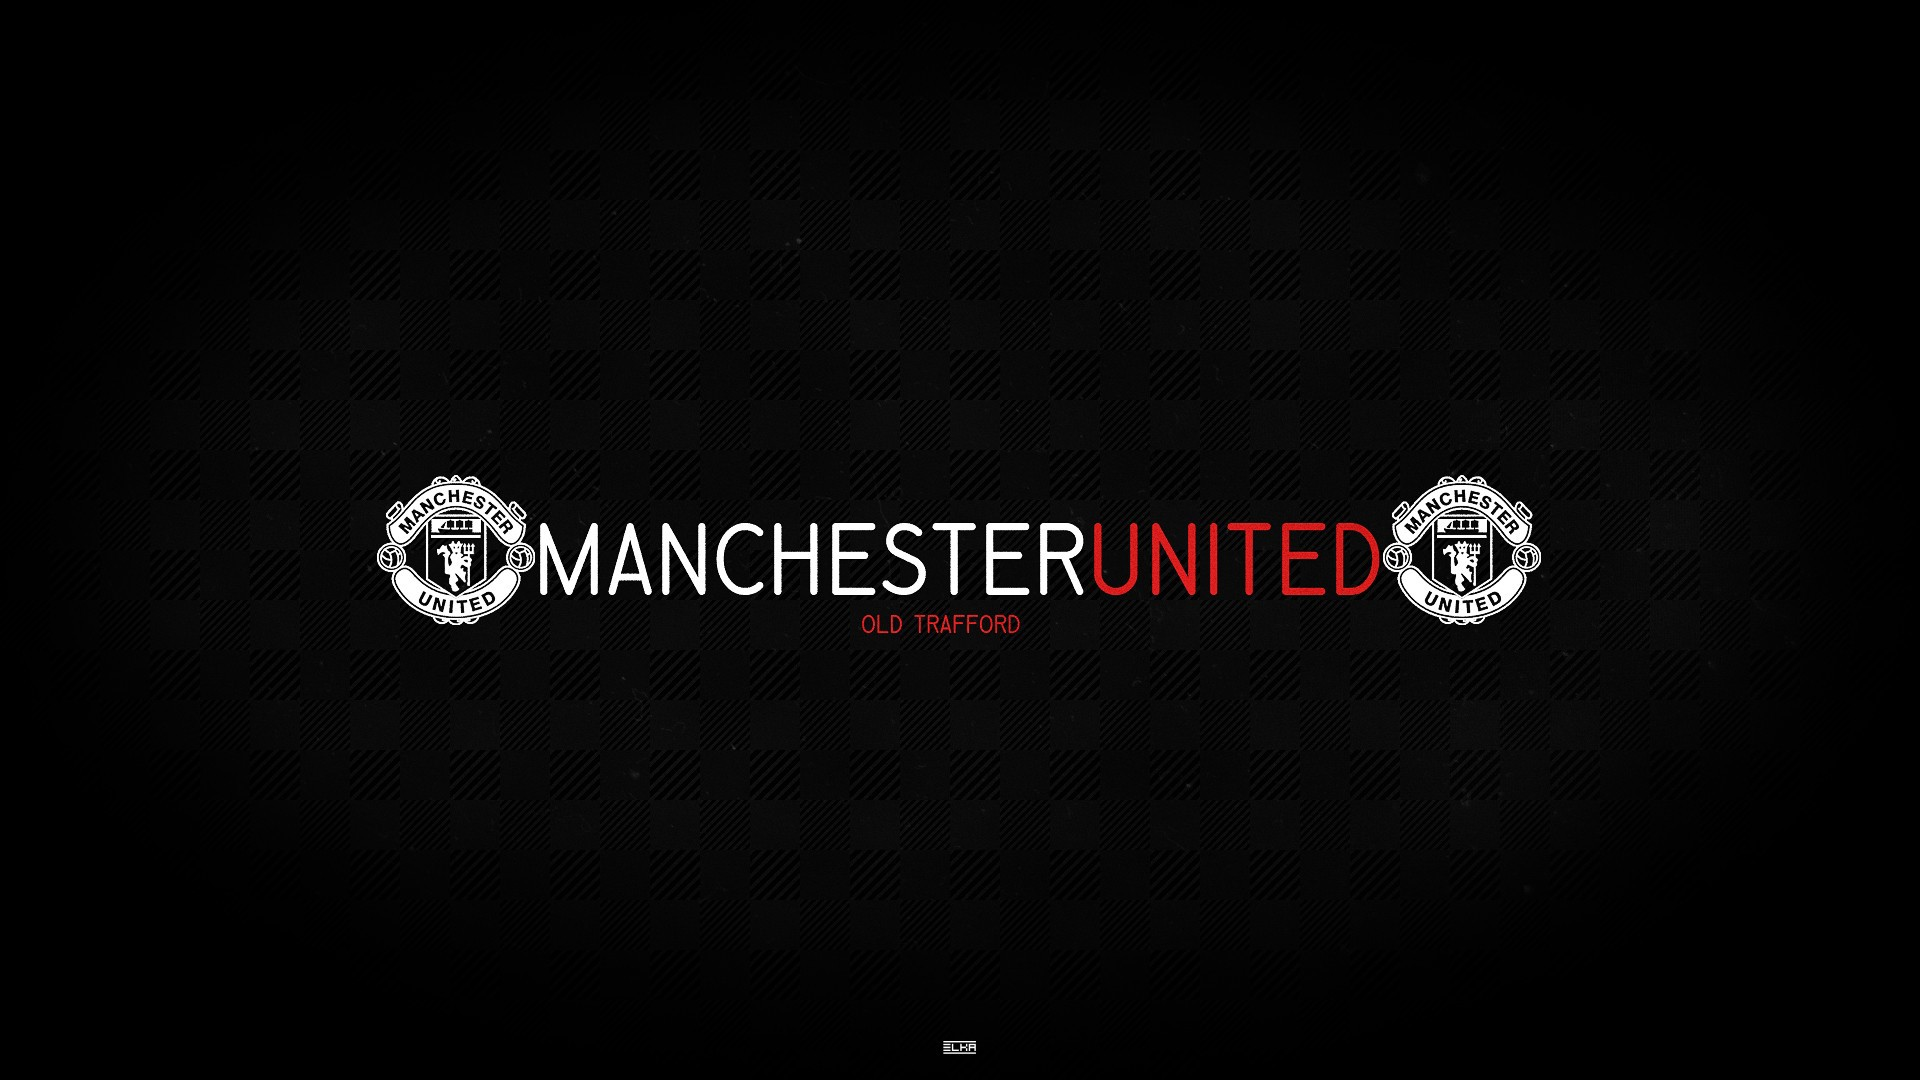 Manchester united hd wallpaper voltagebd Image collections